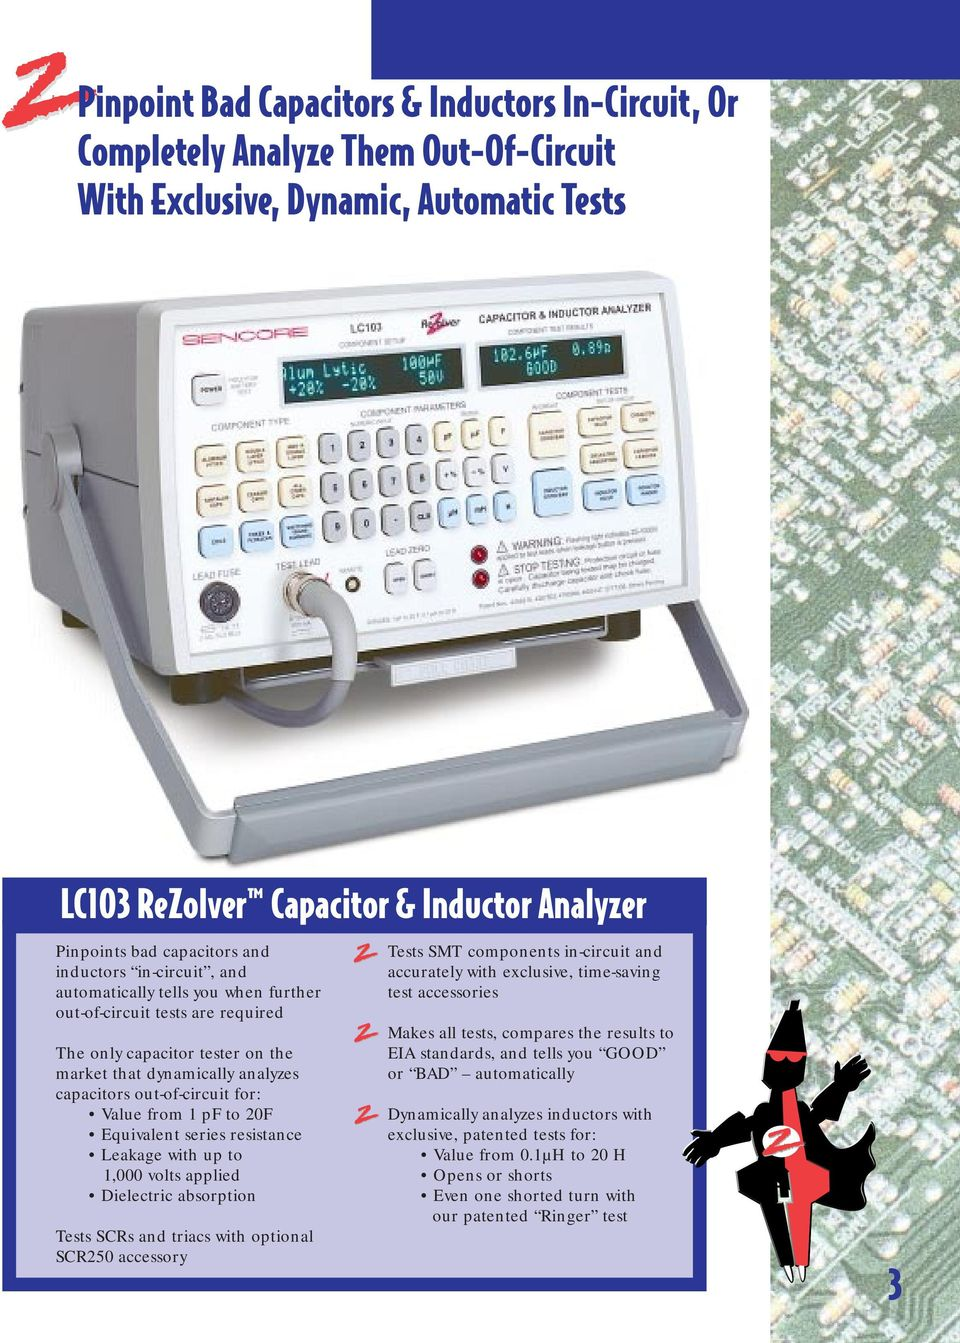 Lc103 Rezolver In Circuit Capacitor Inductor Analyzer Pdf Inductance With The Test Below Until Exact Is Out Of For Value From 1 Pf To 20f Equivalent Series Resistance